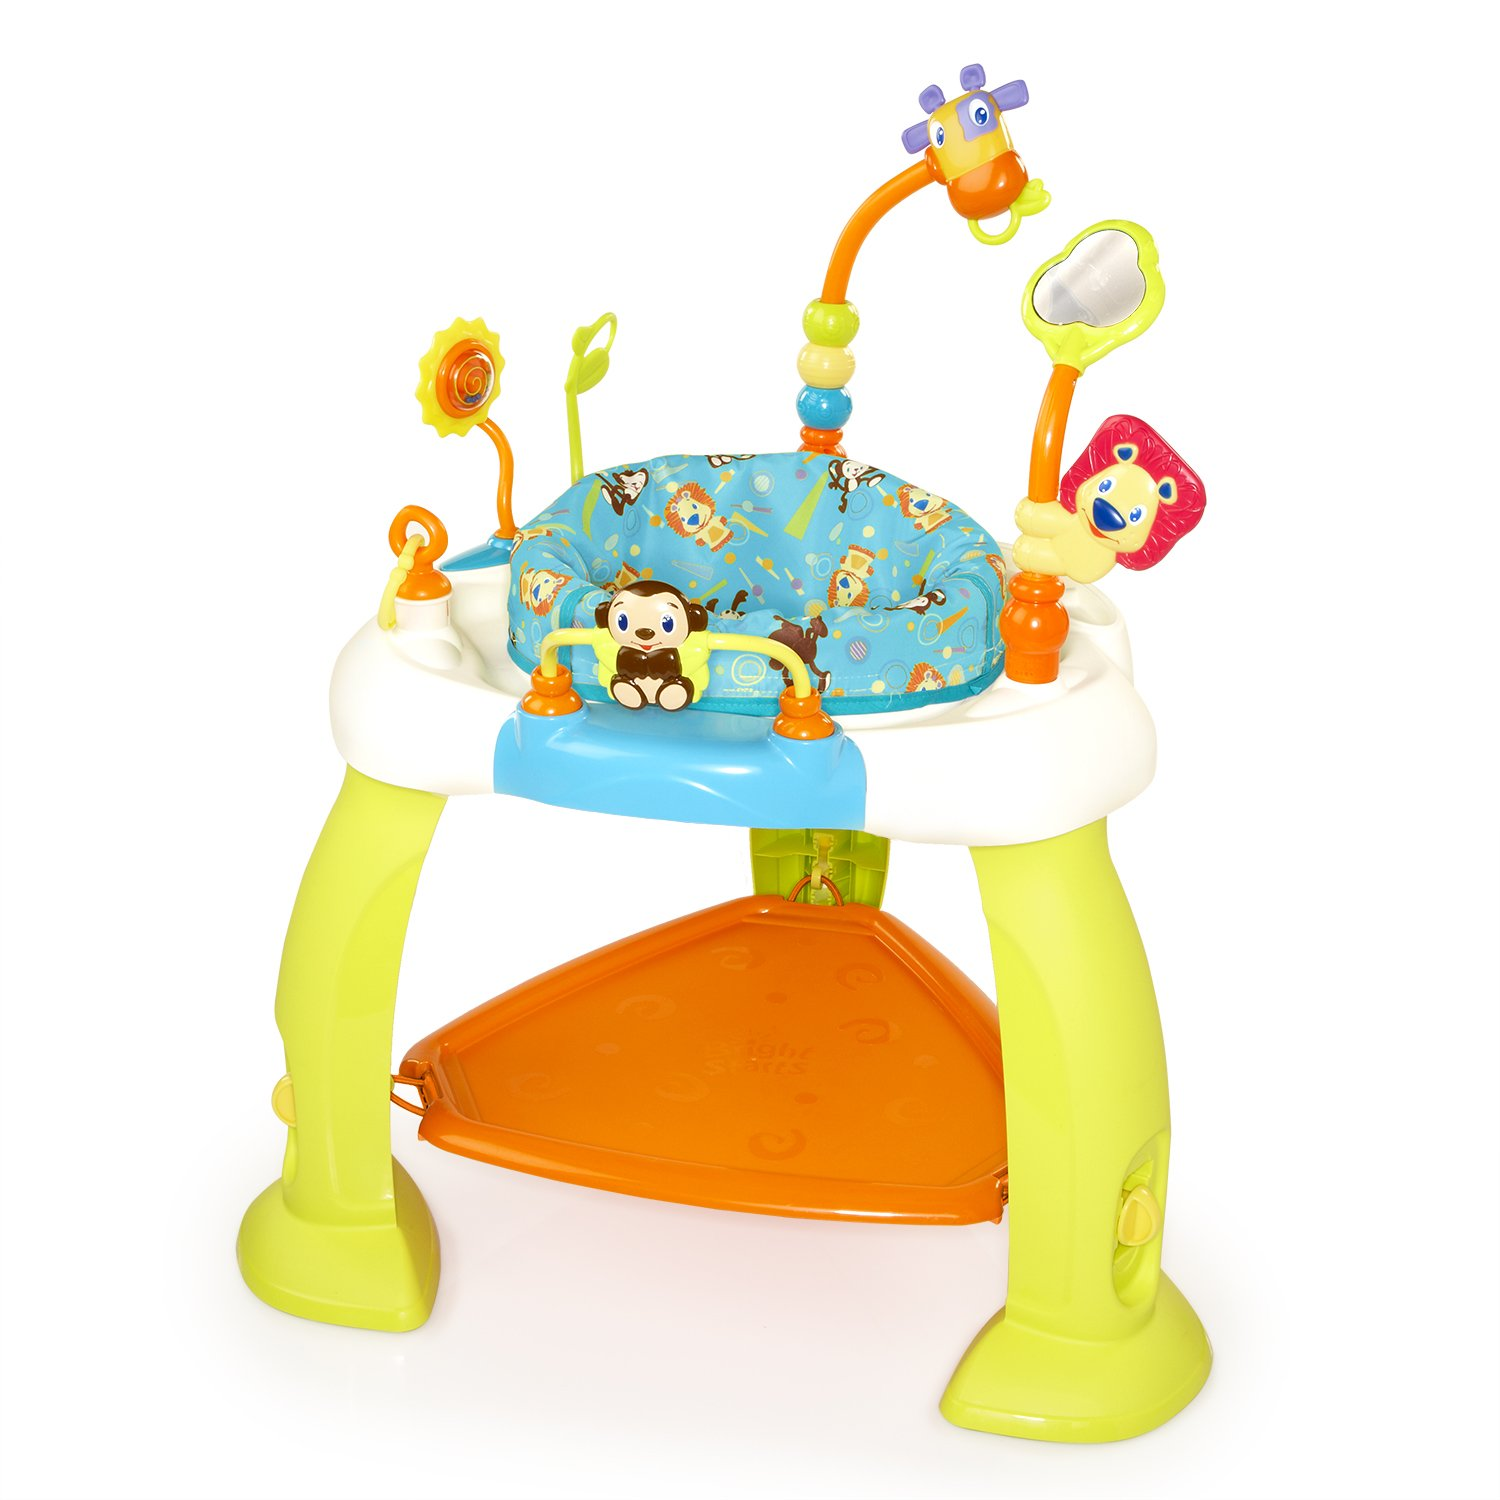 Bright Starts BS7122 - Andador con altura regulable: Amazon.es: Bebé